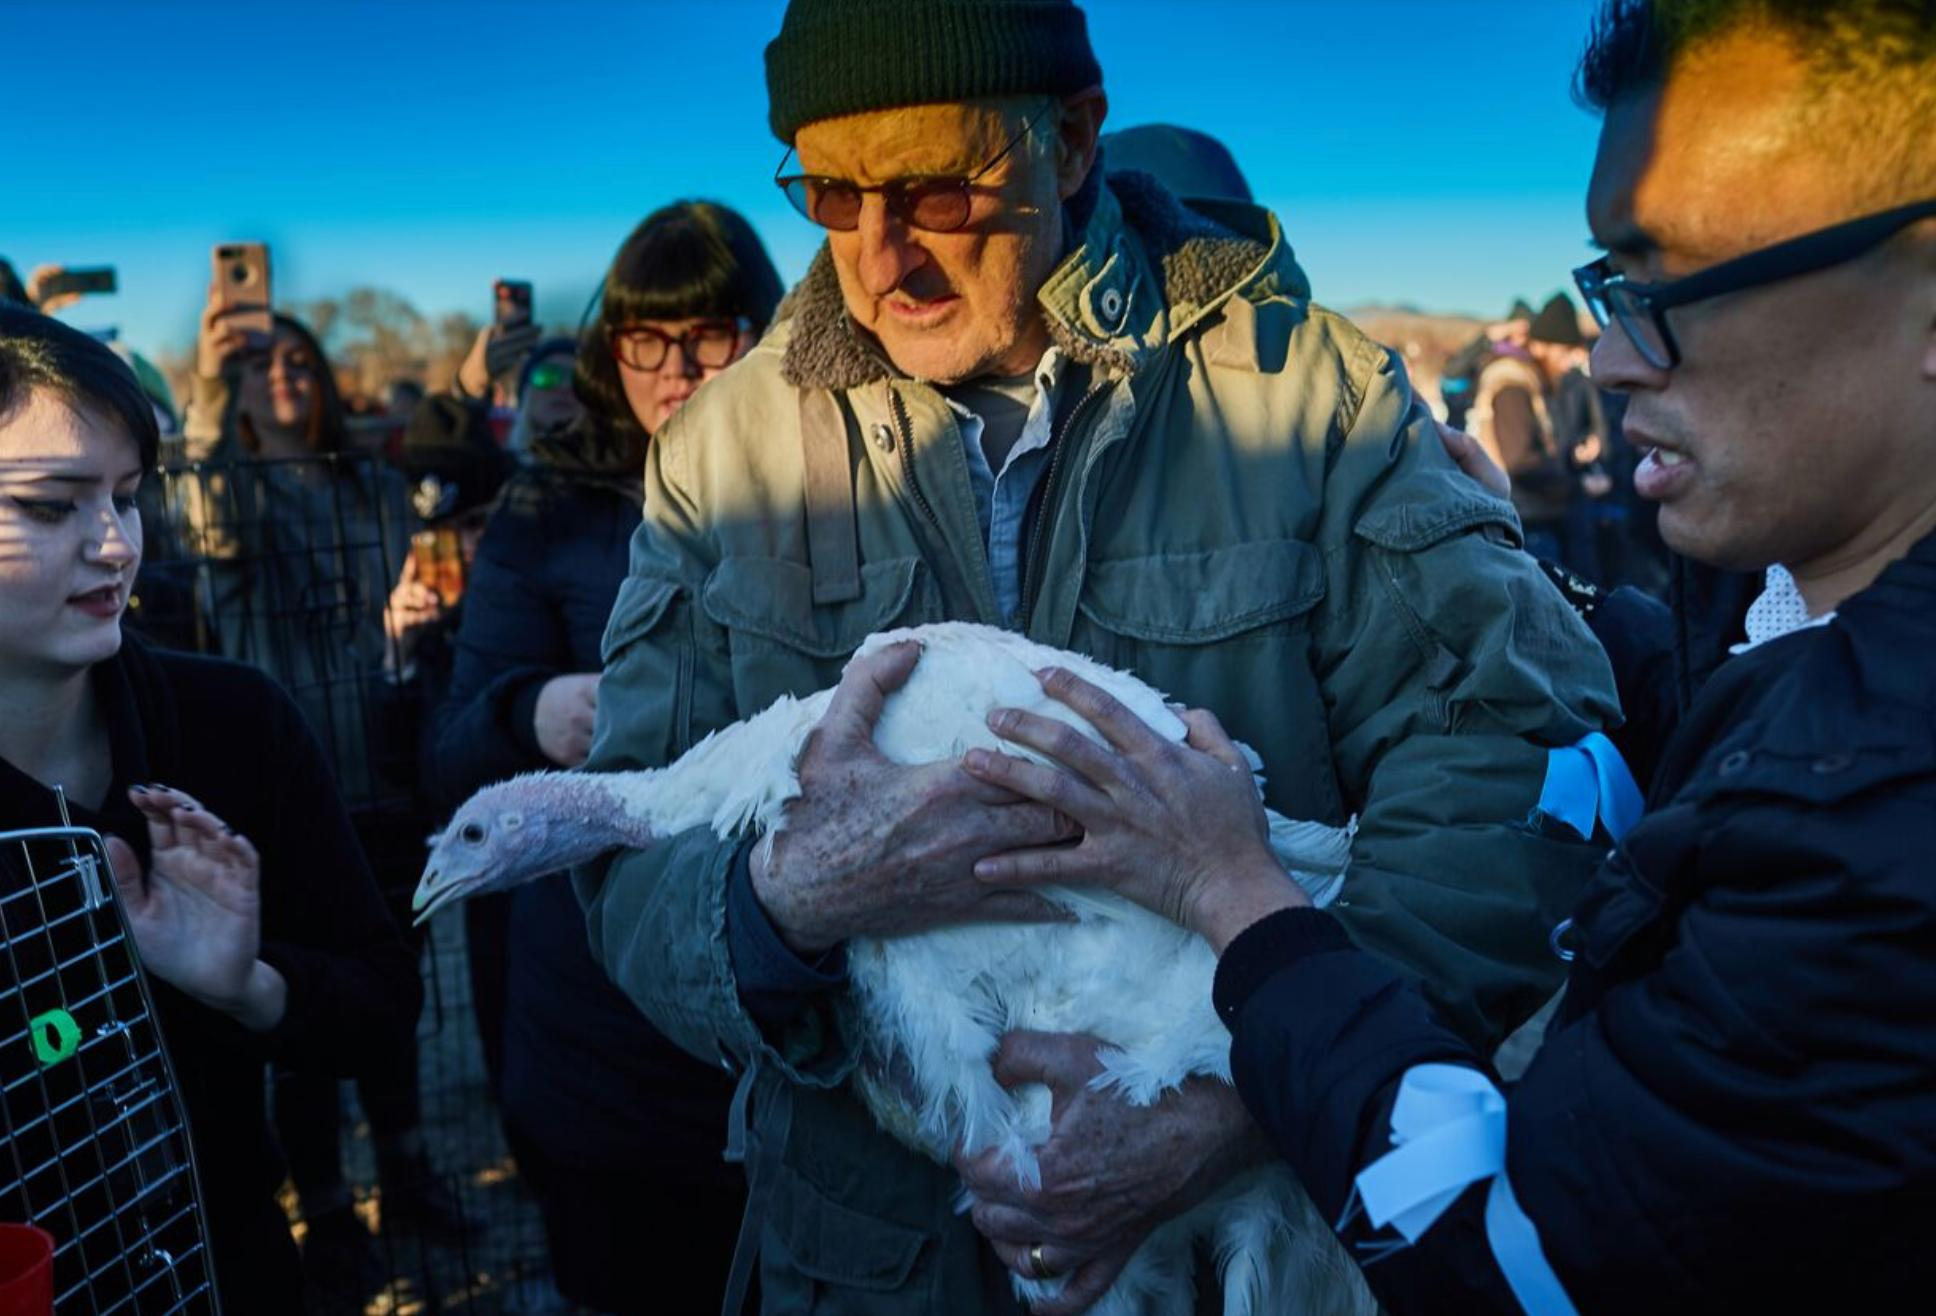 Vegan actorJames Cromwell rescues a turkey